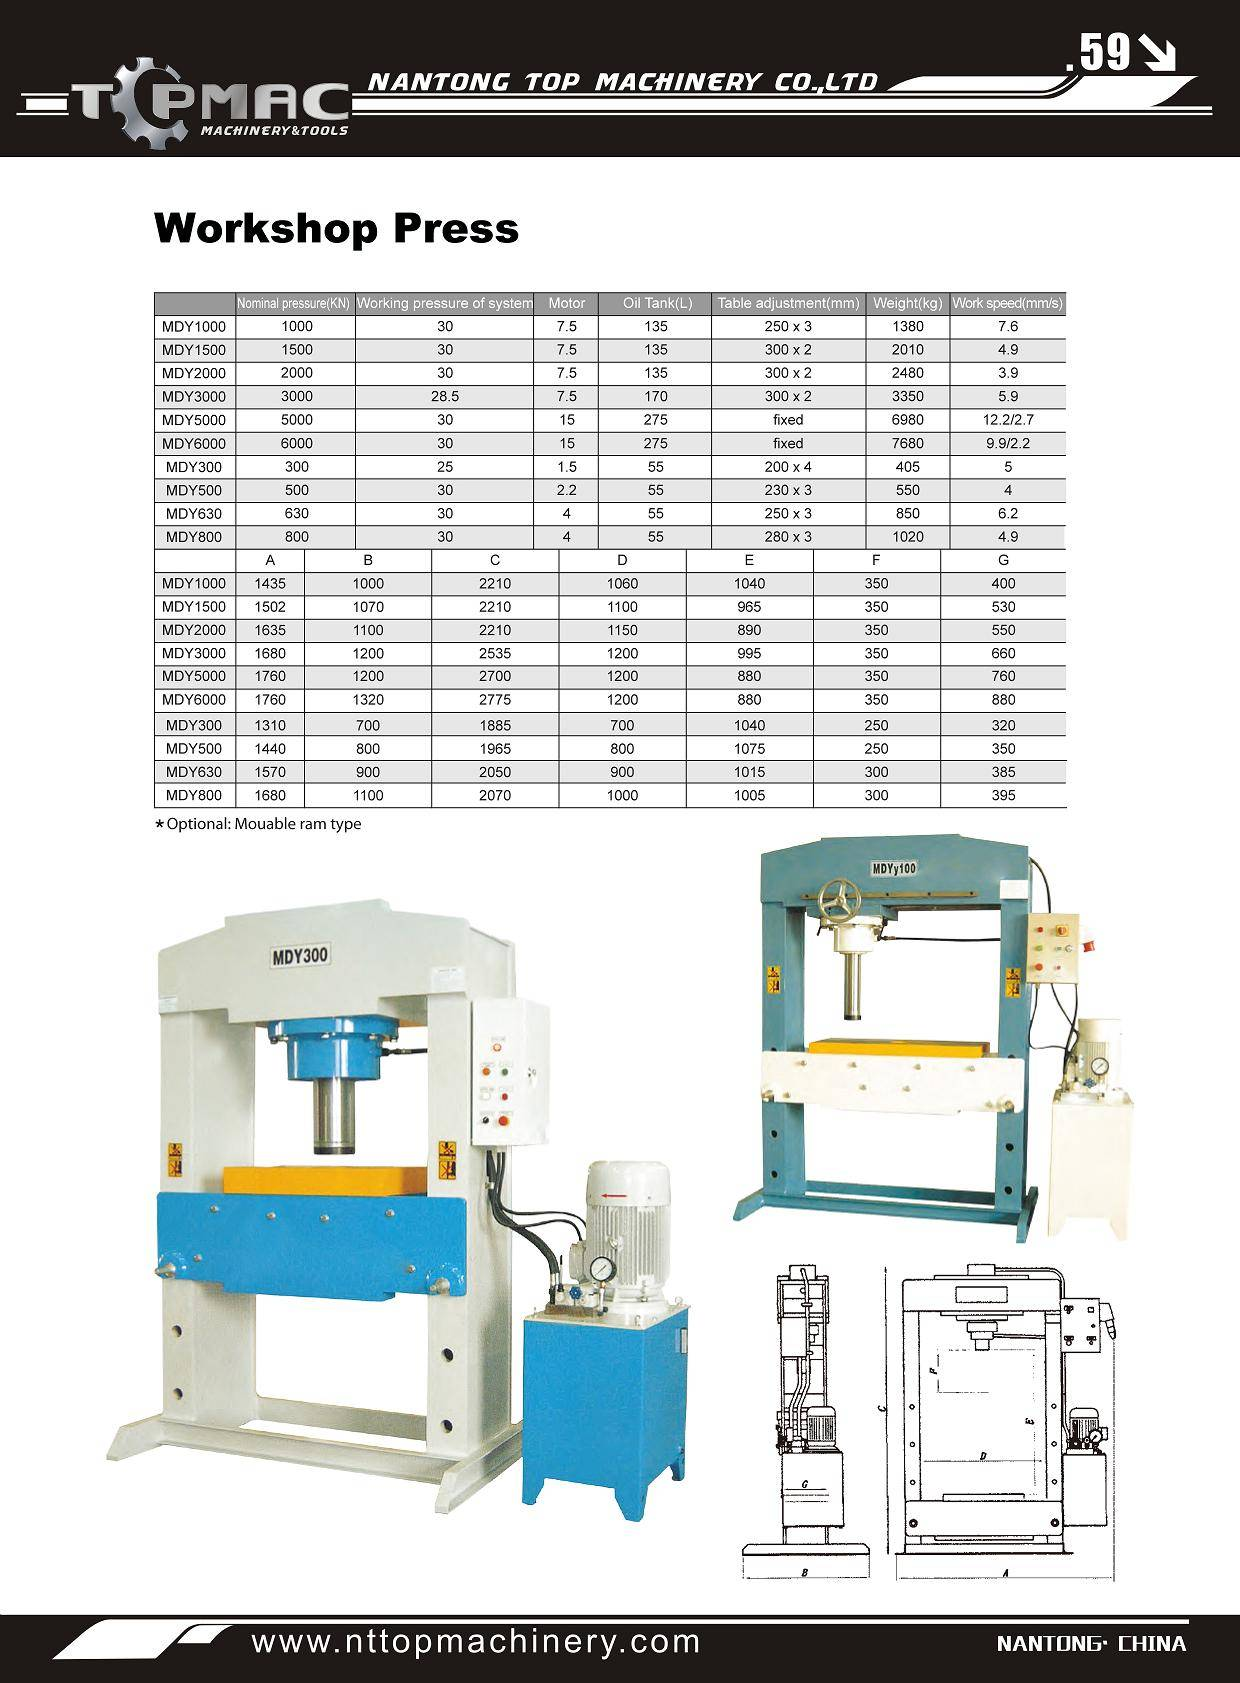 Workshop Press